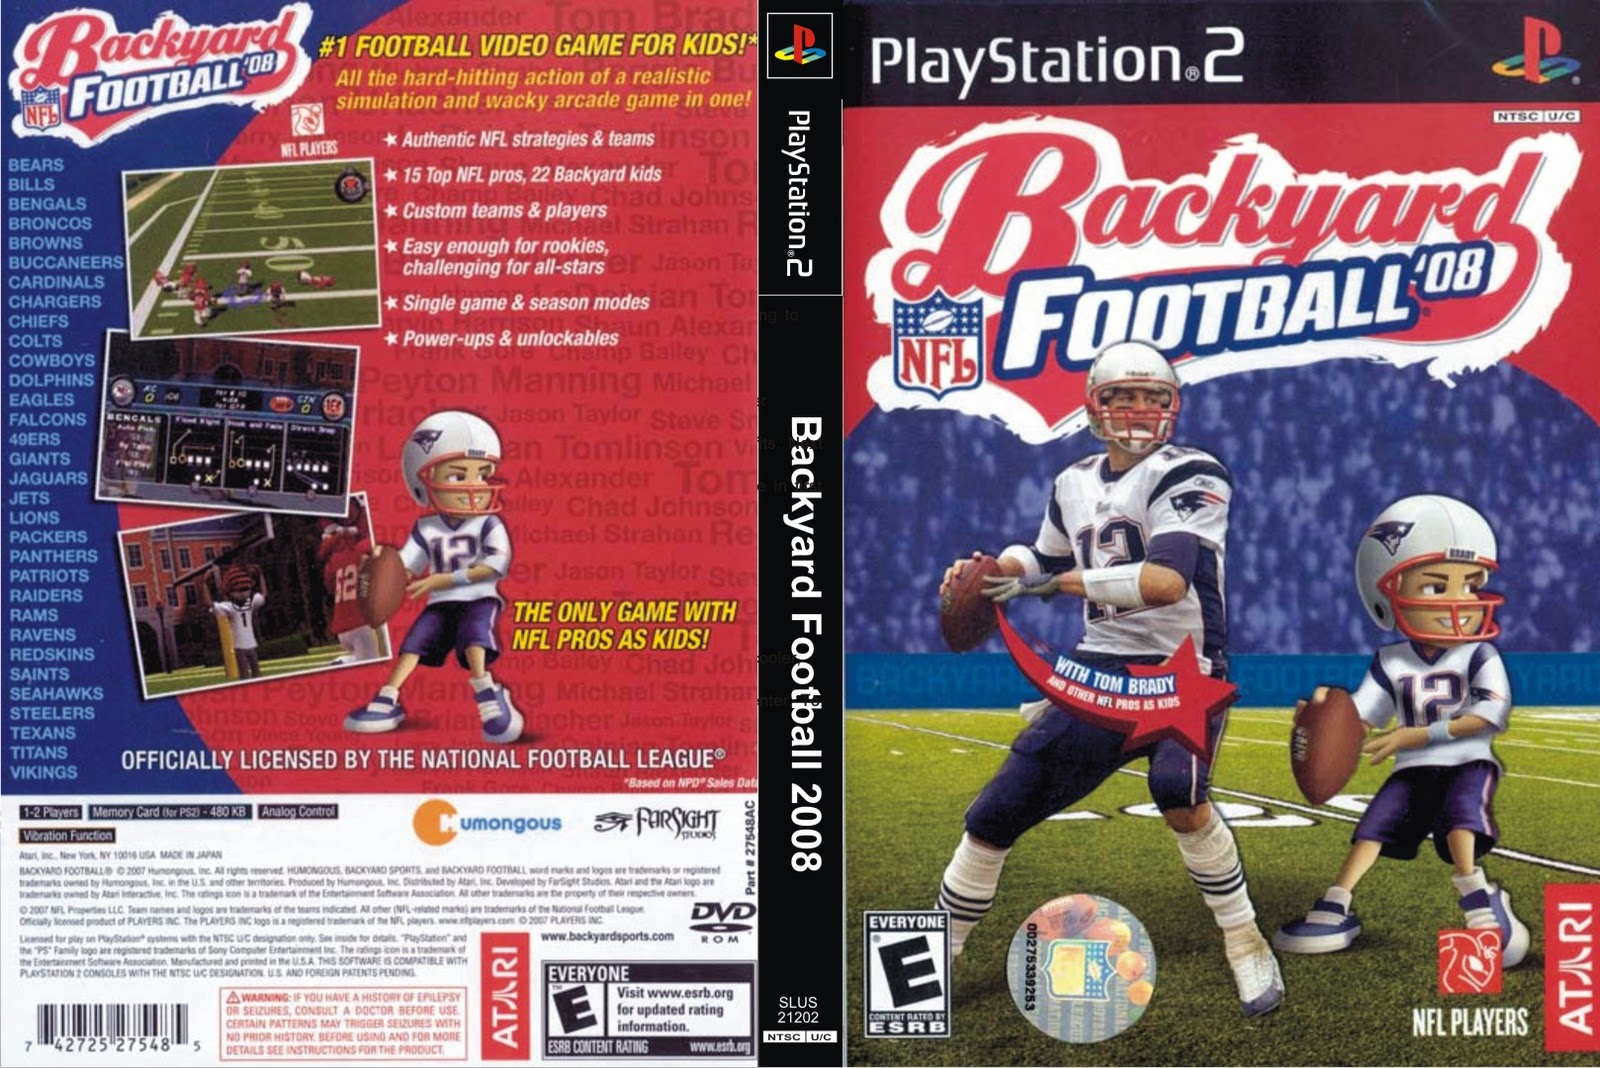 Ultimate Backyard Football : Backyard Football 2006 Compressed Free Download full version